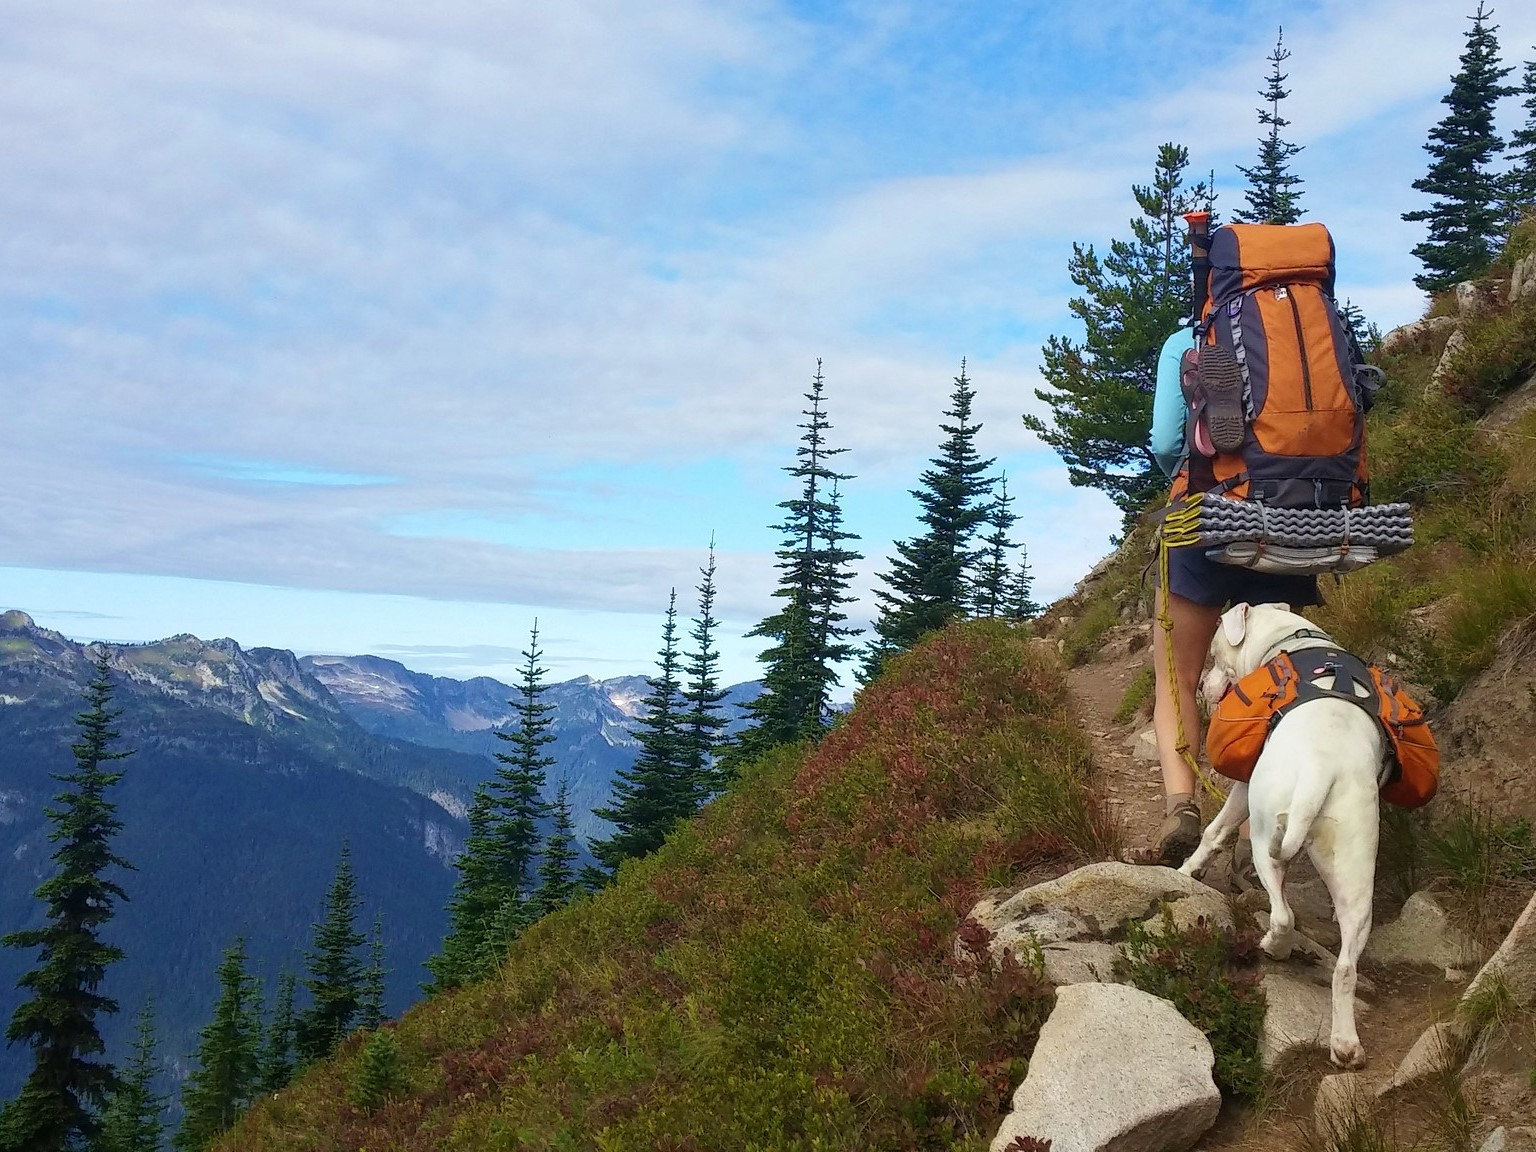 A hiker with a backpacking pack heads up a ridge with their dog on leash behind them.